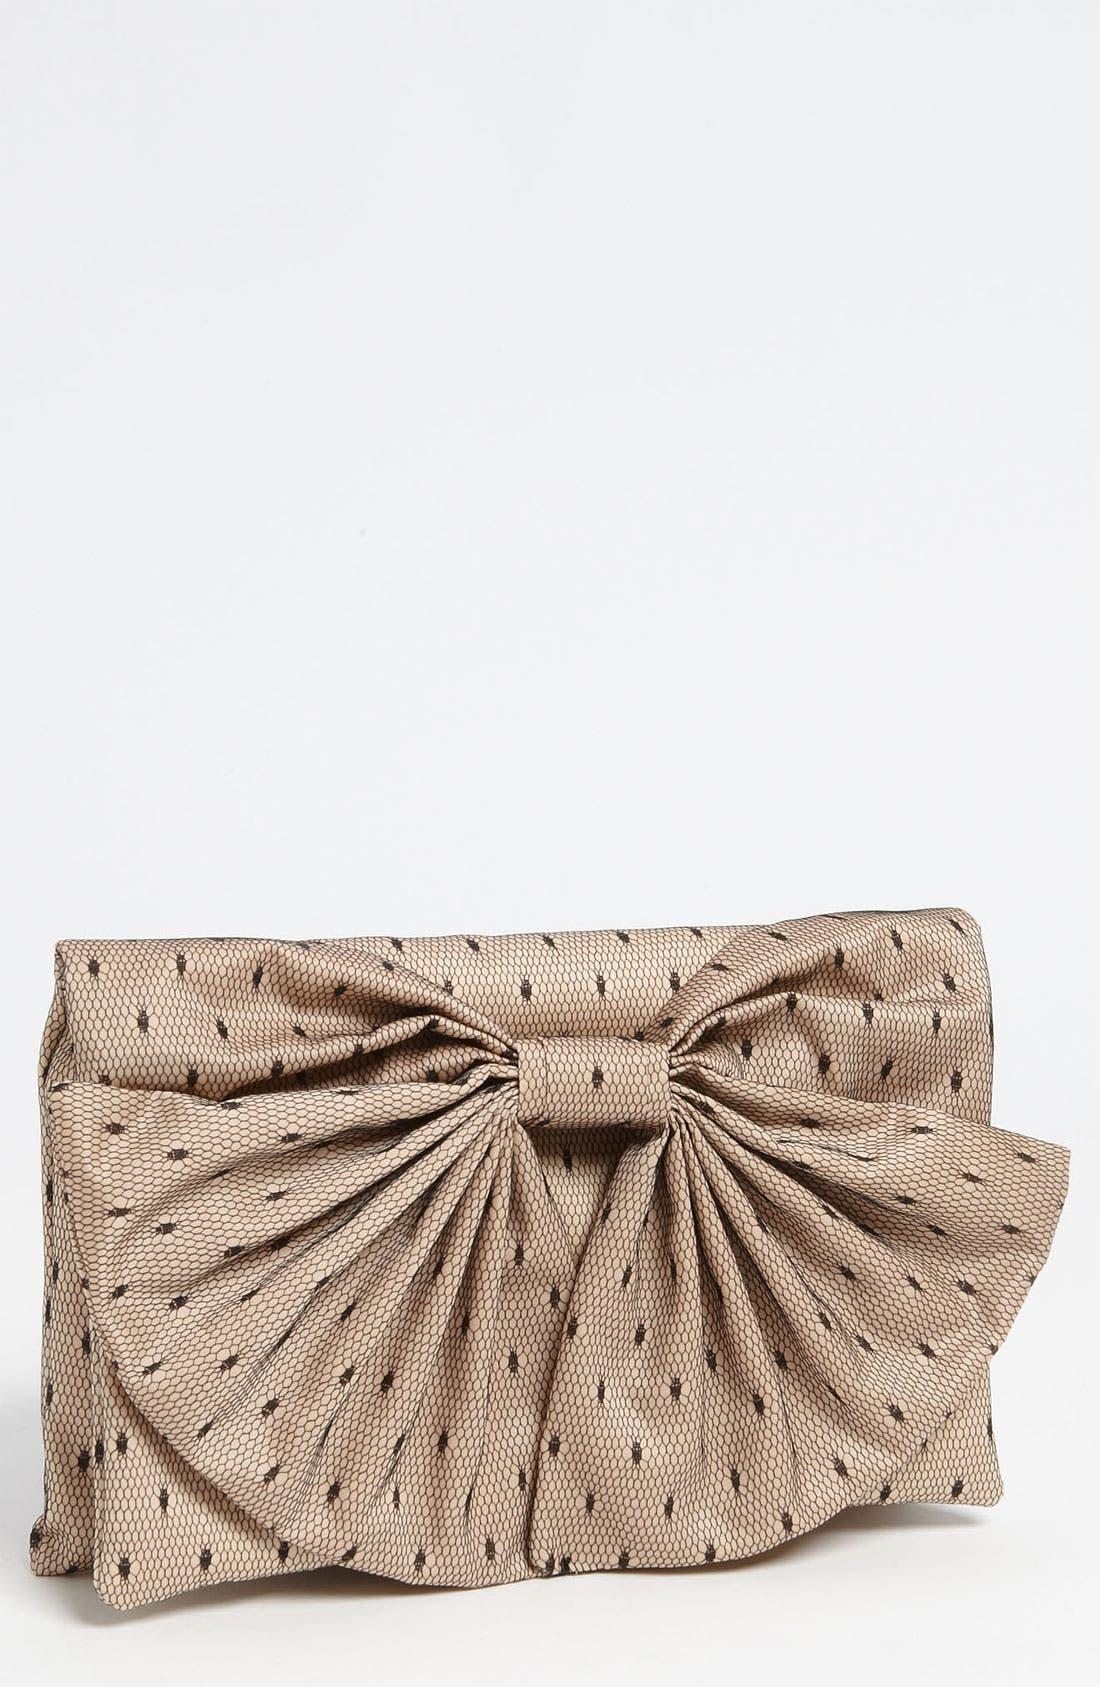 Main Image - RED Valentino 'Bow' Point d'Esprit Clutch